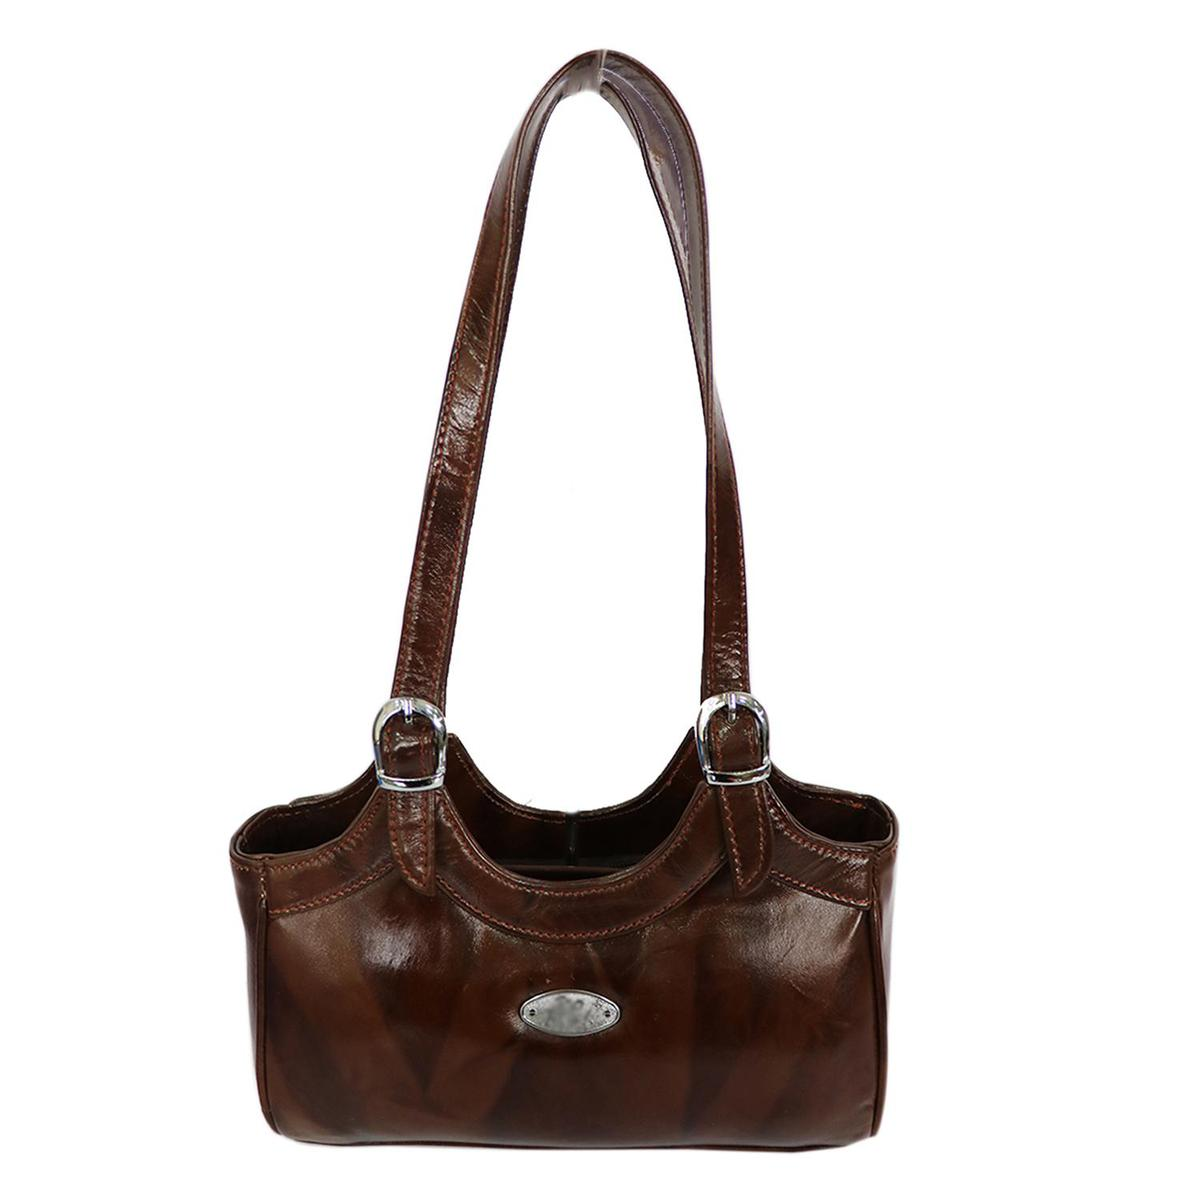 Lelys - Rich Quality Leather Hand Bag For Women/Girls - Brown